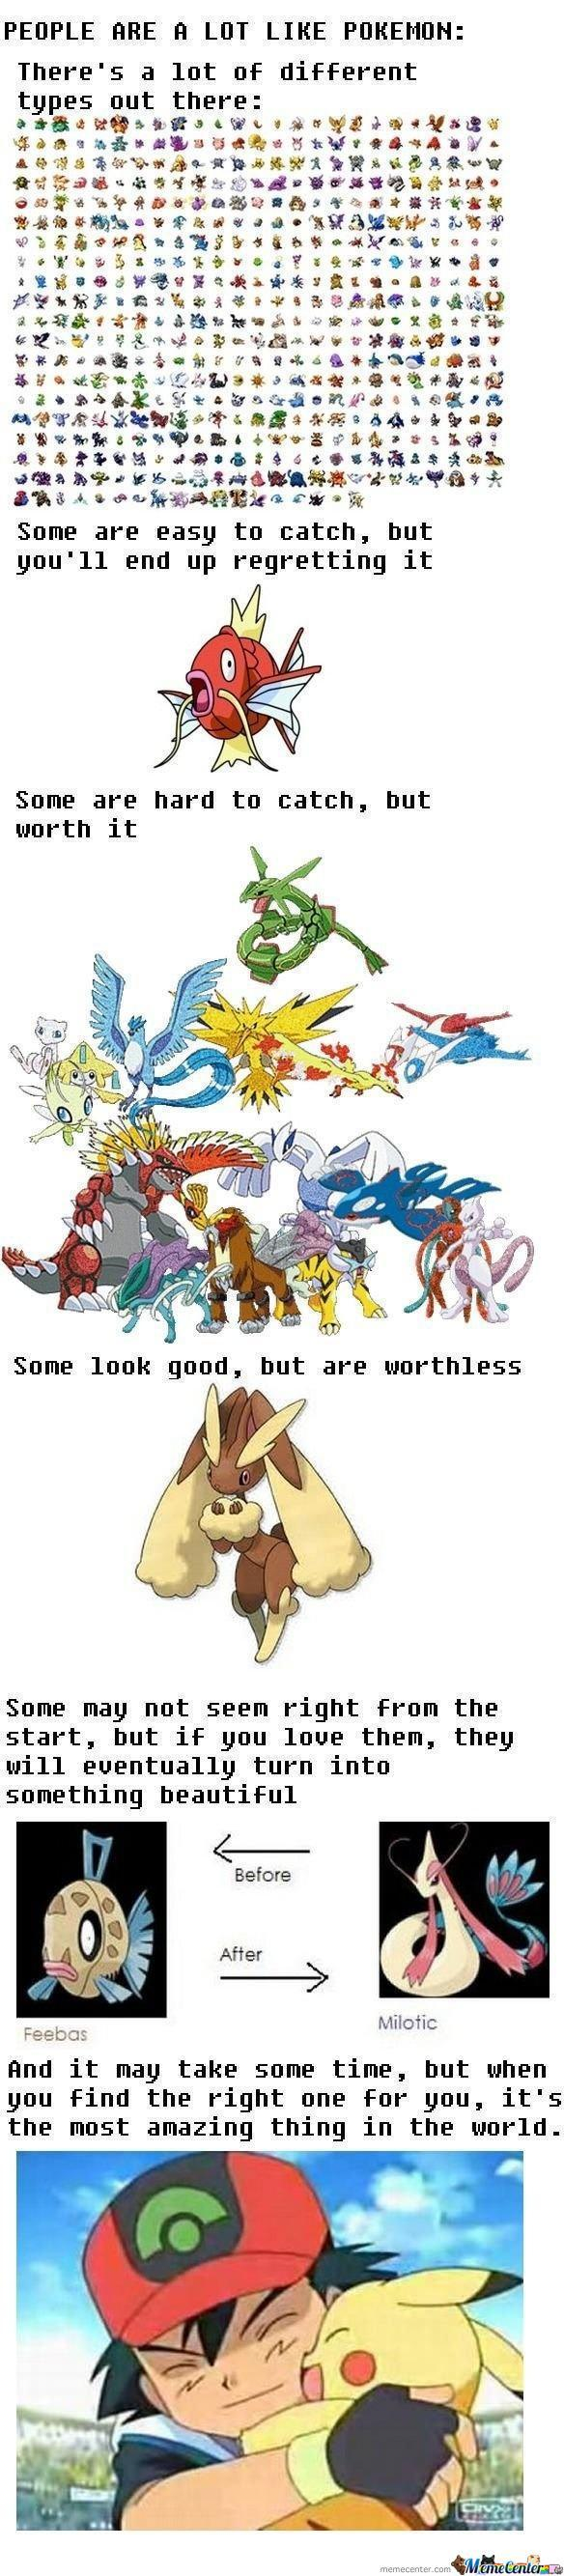 People And Pokemon (Not Mine)